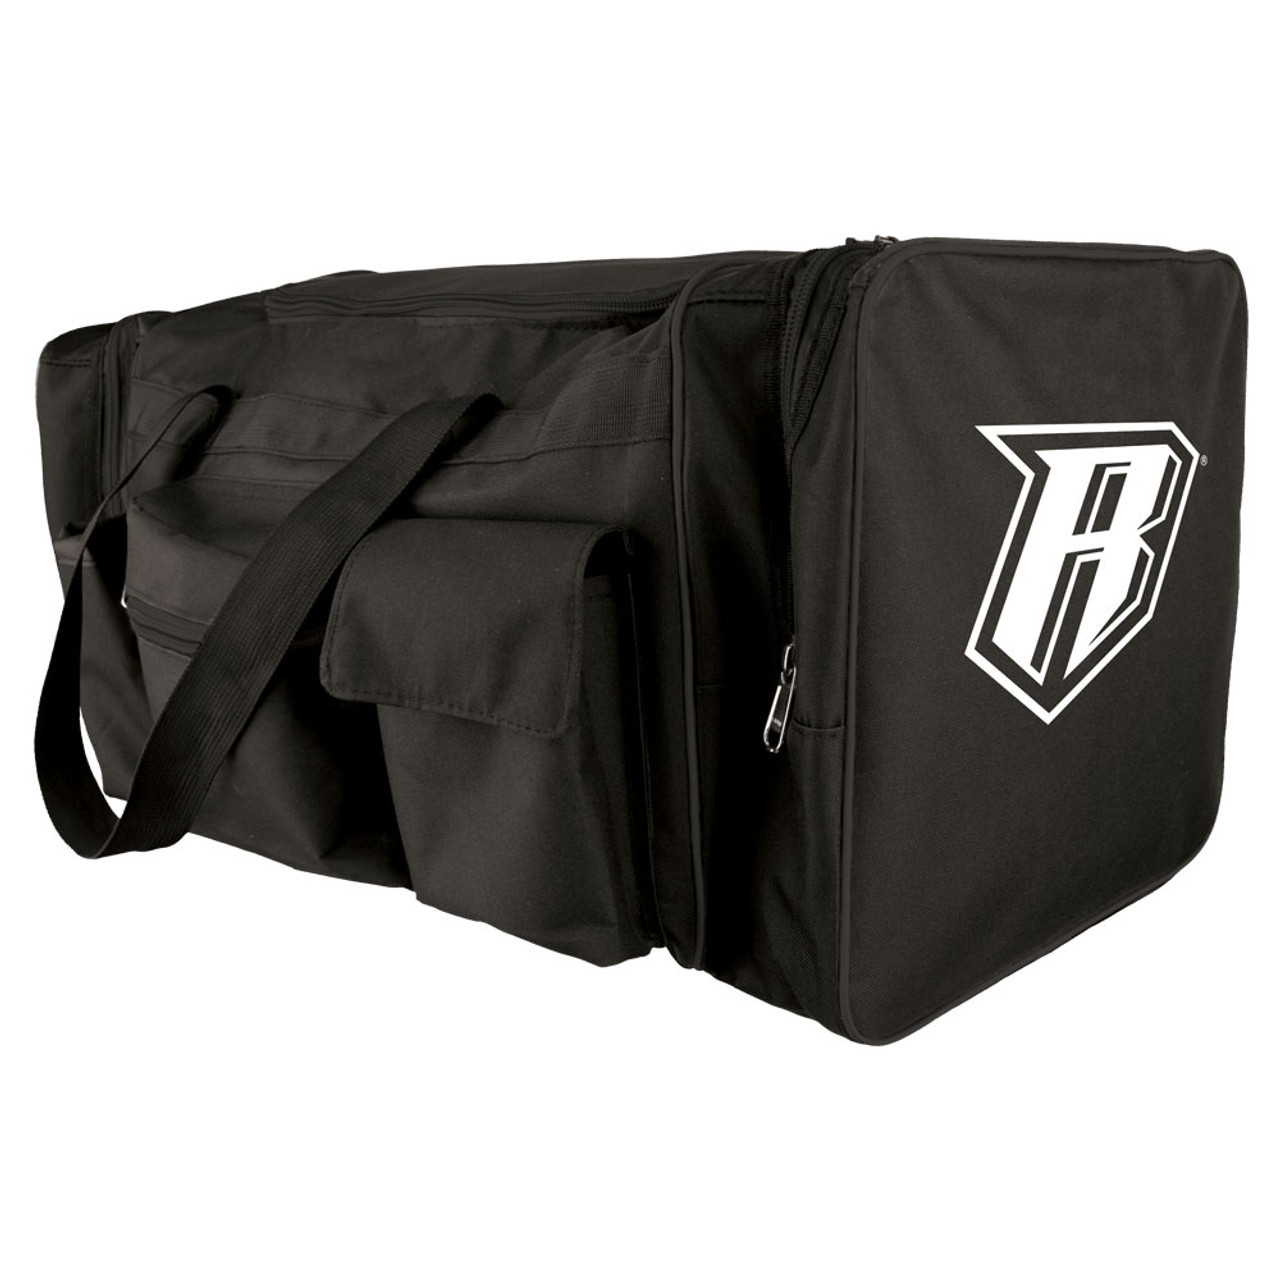 Cruiserweight Duffel Bag